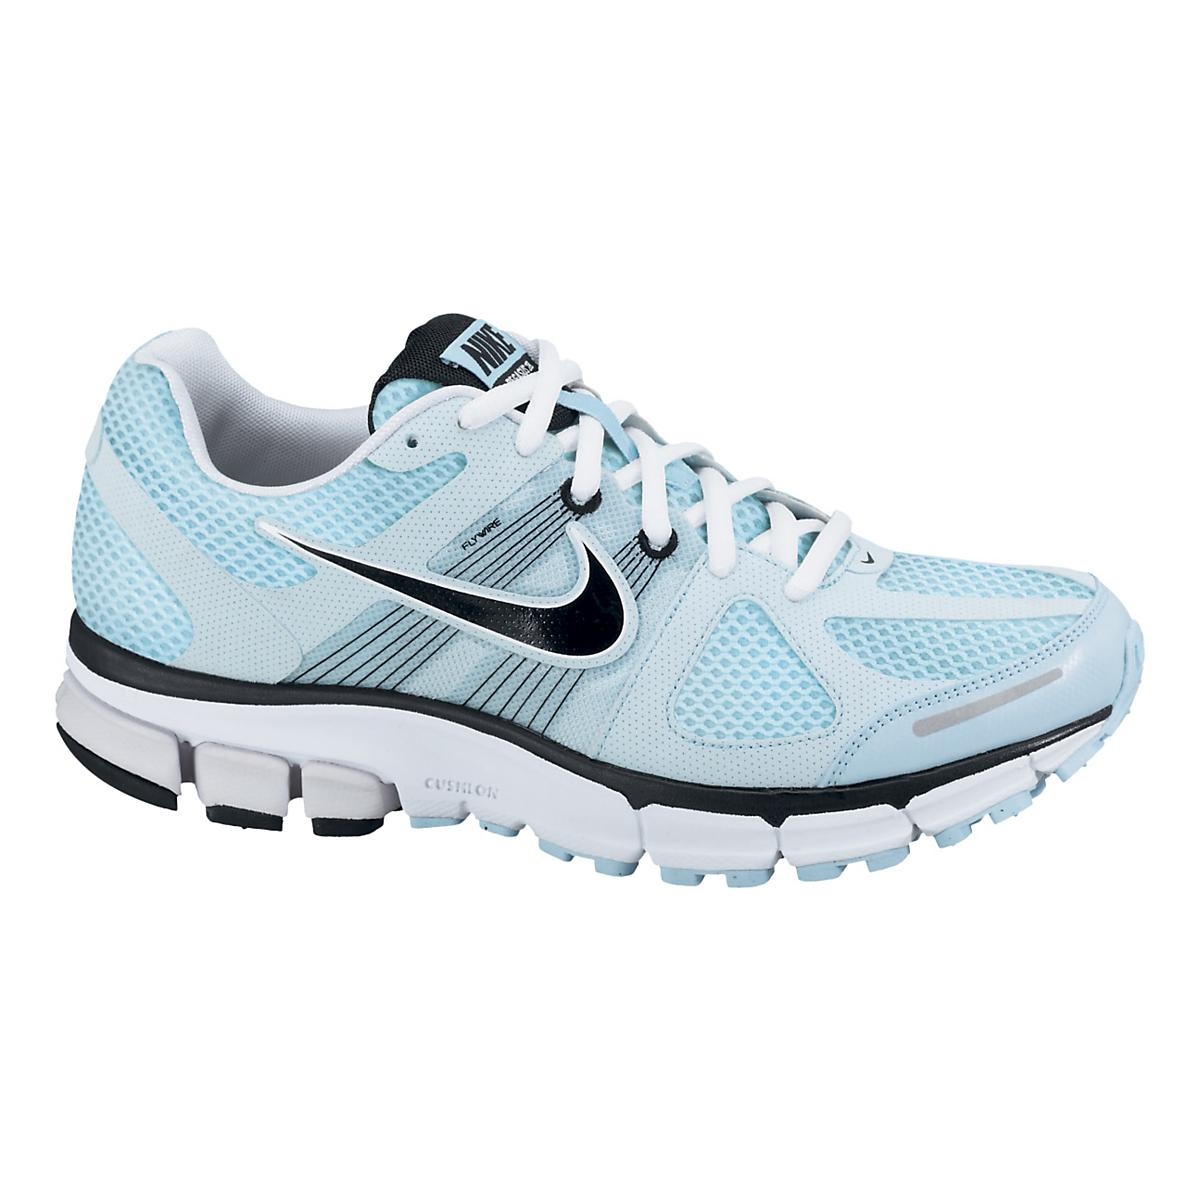 93c865b6ce5e Womens Nike Air Pegasus+ 28 Breathe Running Shoe at Road Runner Sports